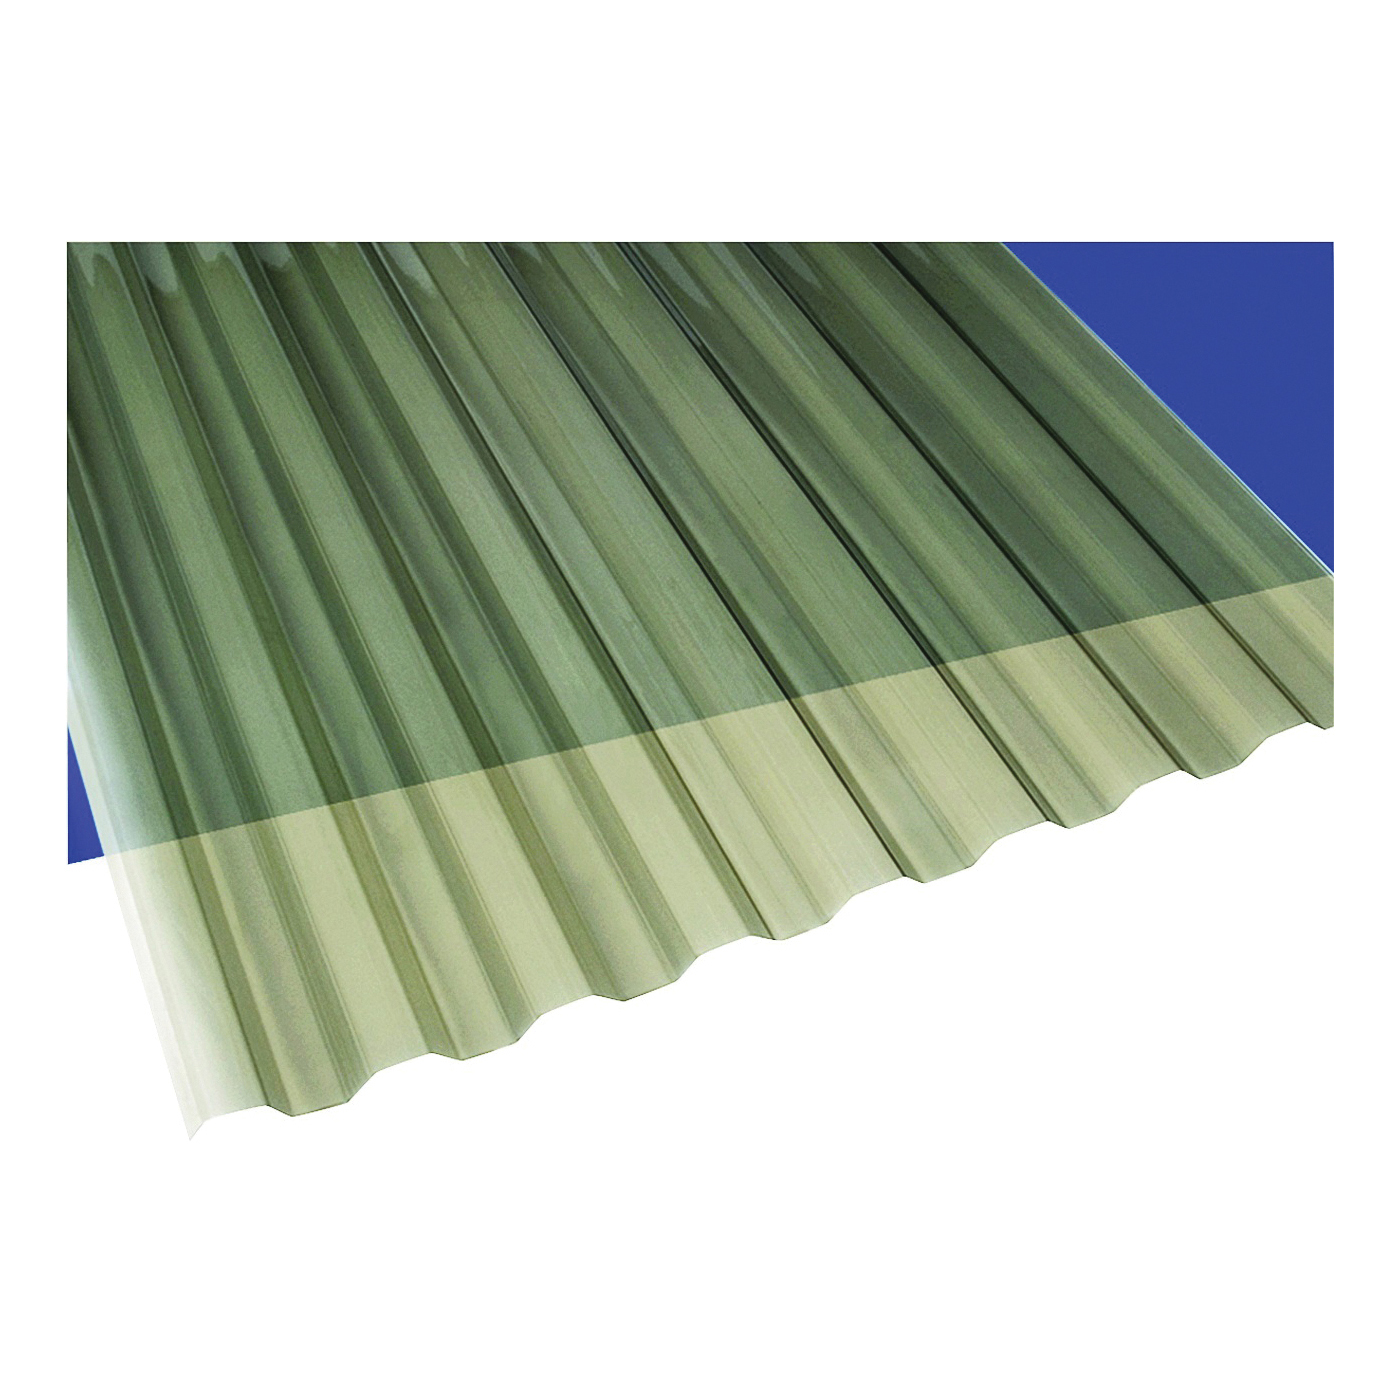 Picture of Suntuf 101929 Corrugated Panel, 8 ft L, 26 in W, Greca 76 Profile, 0.032 Thick Material, Polycarbonate, Solar Gray